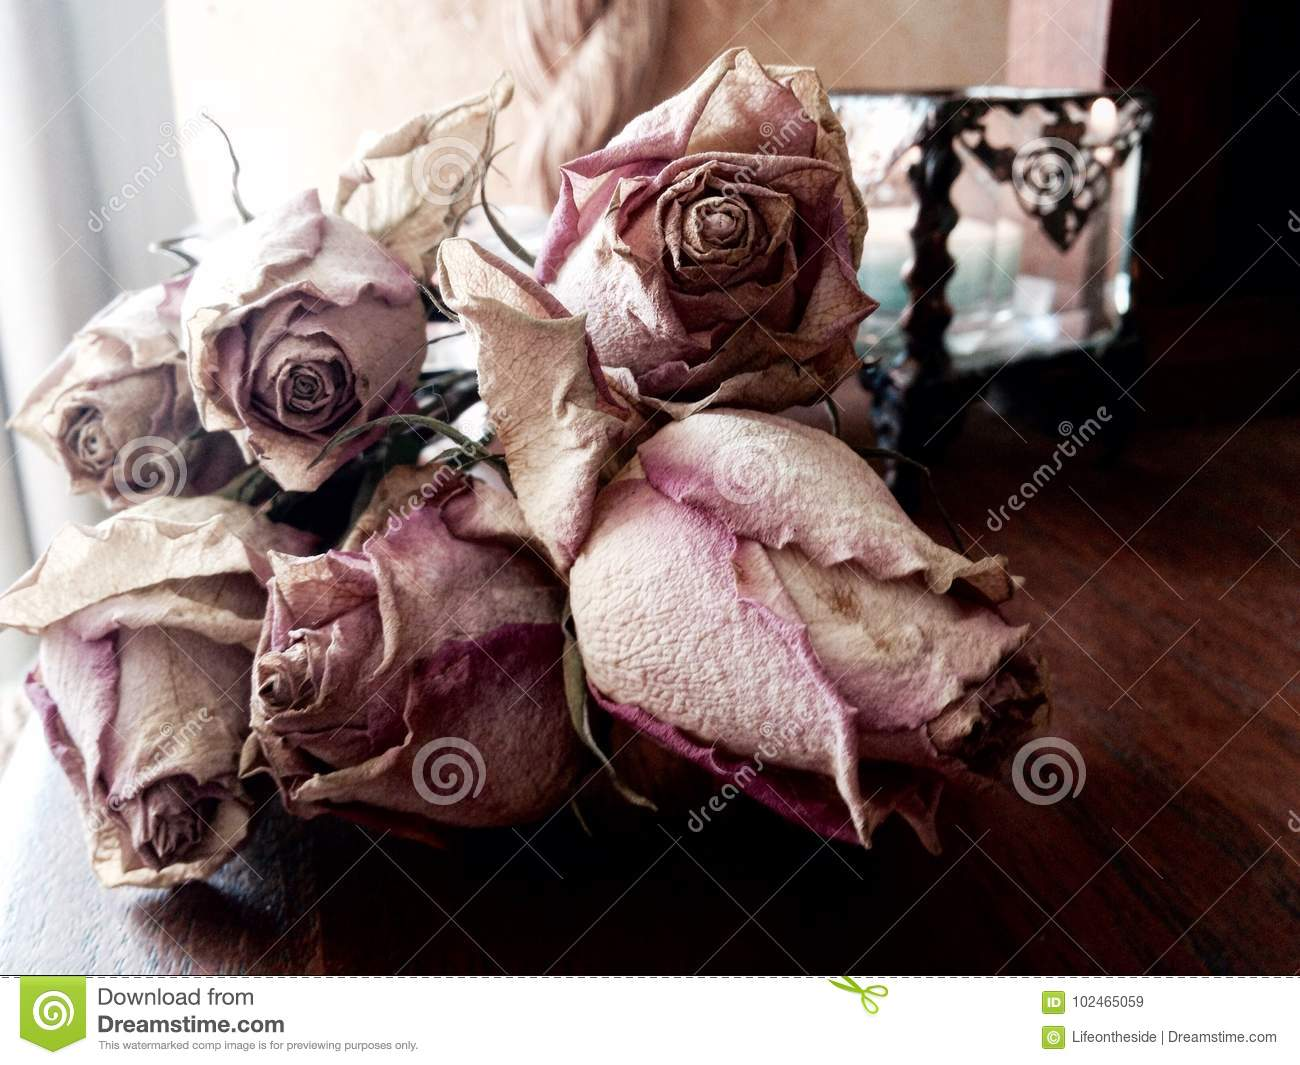 Abstract bunch dead dried pink roses concept death, loss, grief